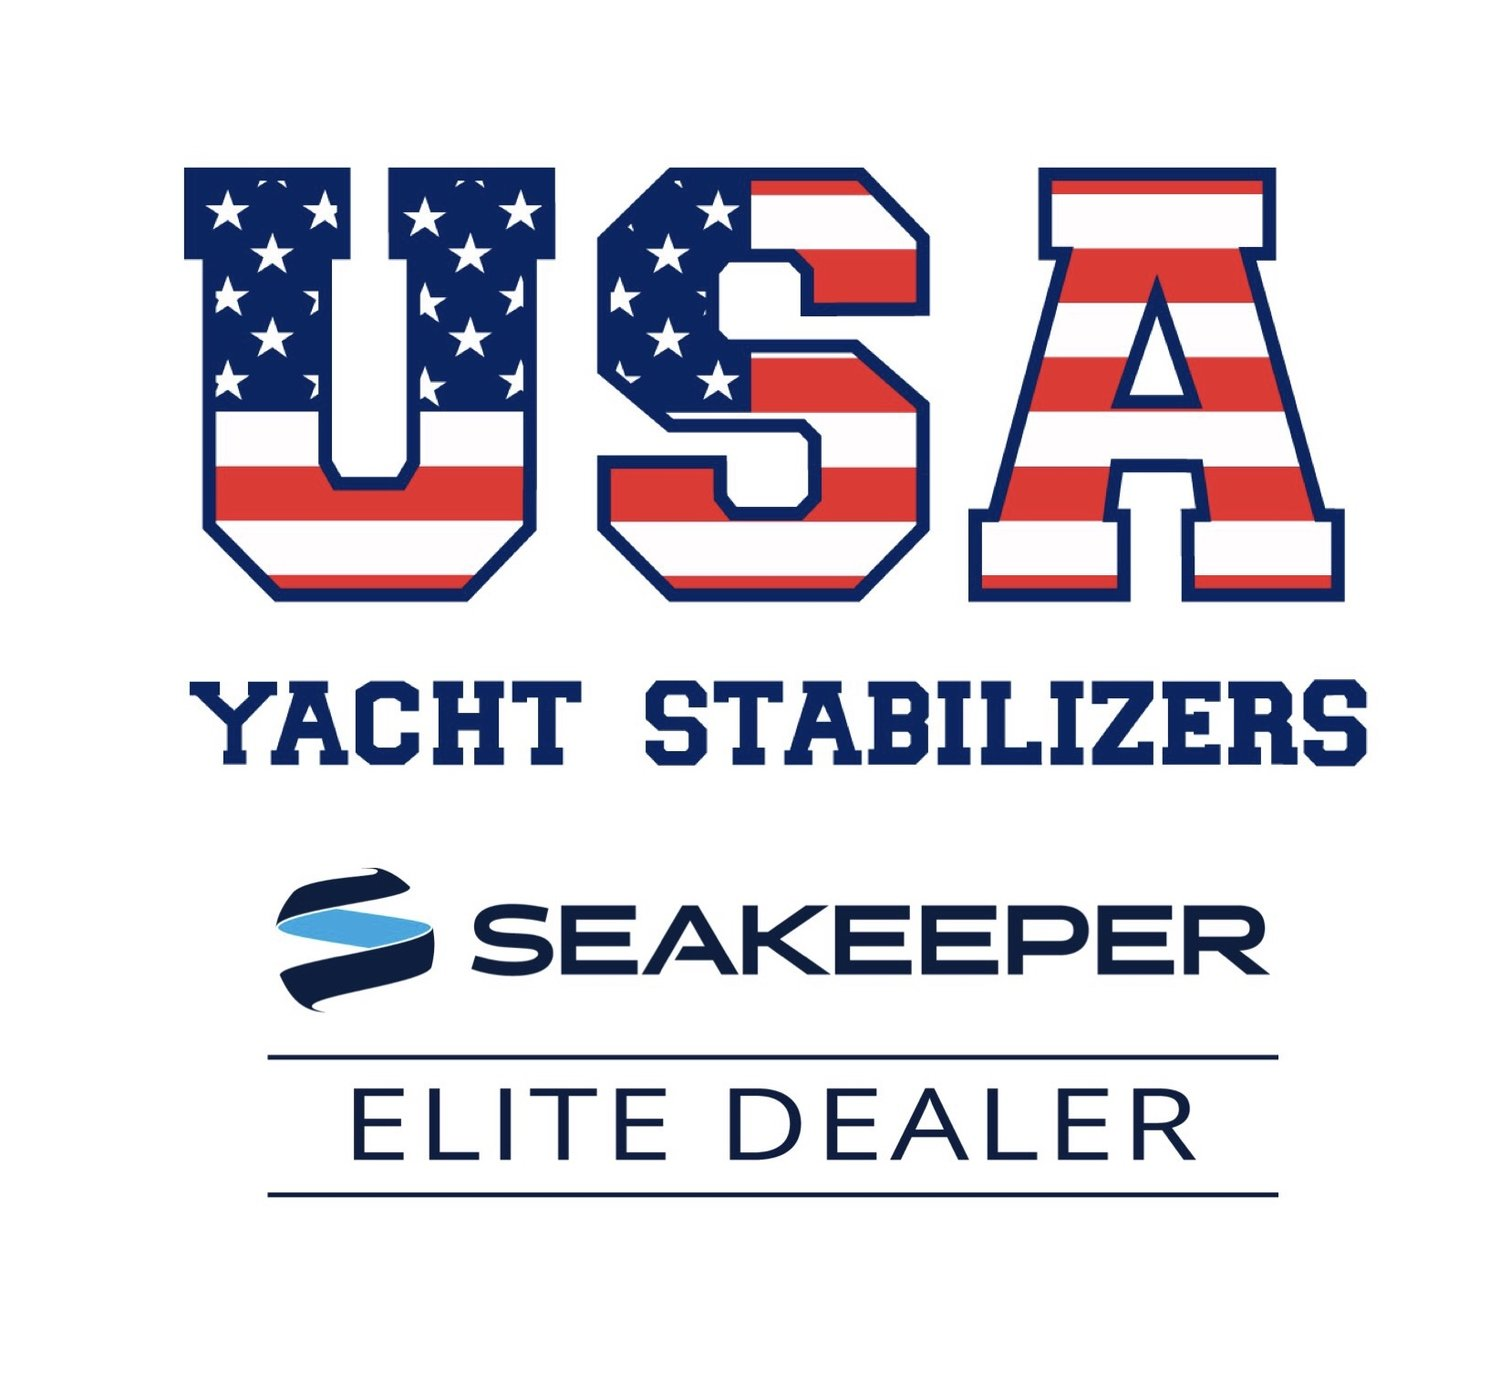 USA Yacht Stabilizers